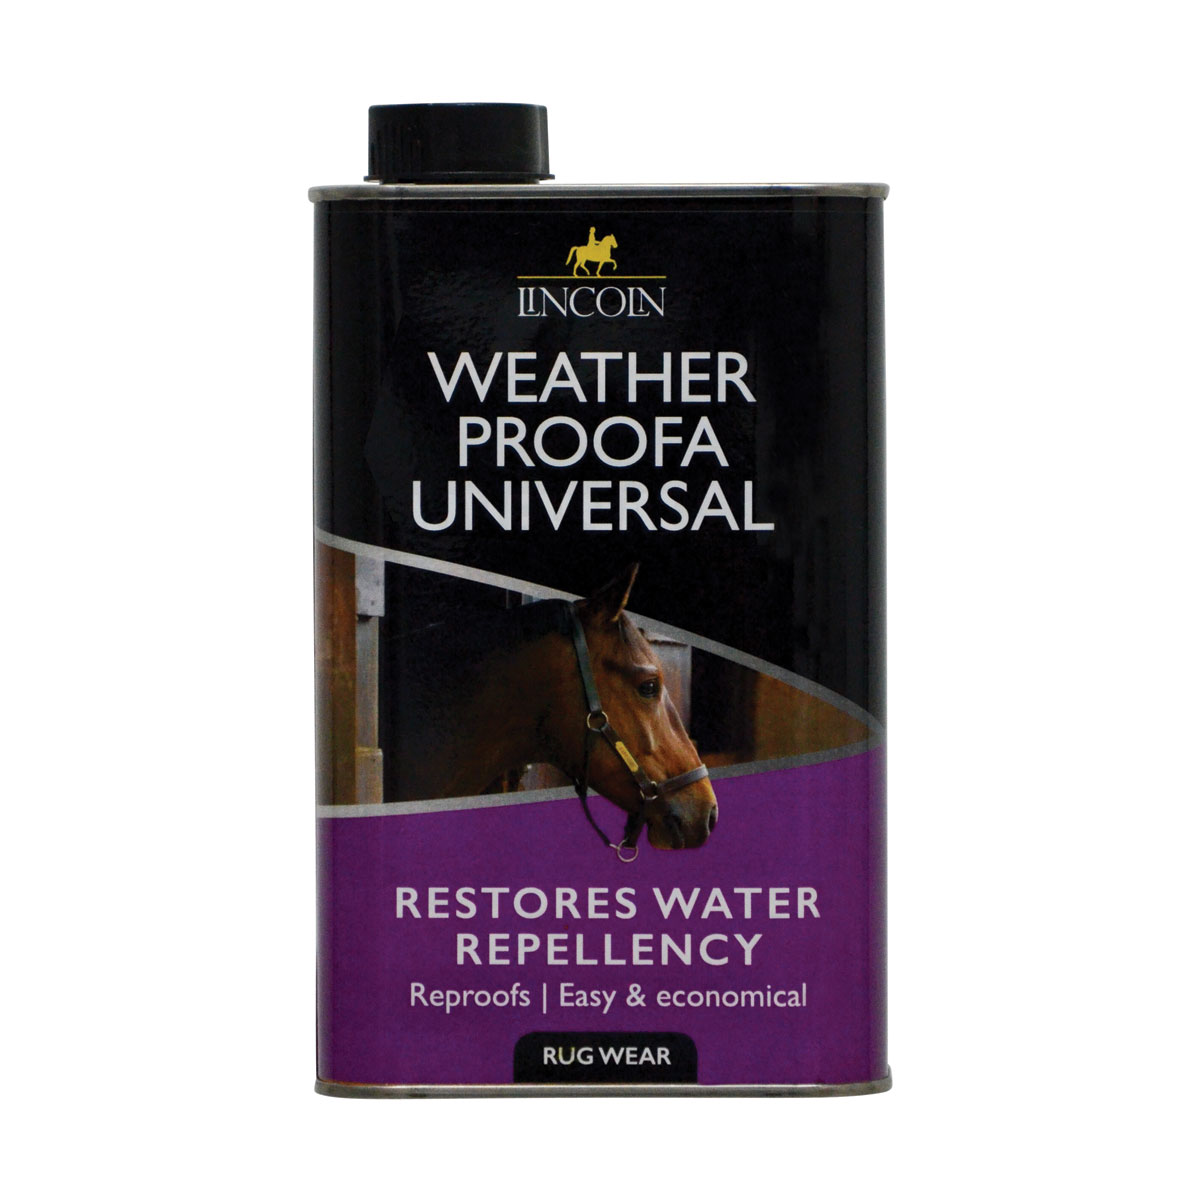 PR-4317-Lincoln-Weather-Proofa-Universal-01.jpg